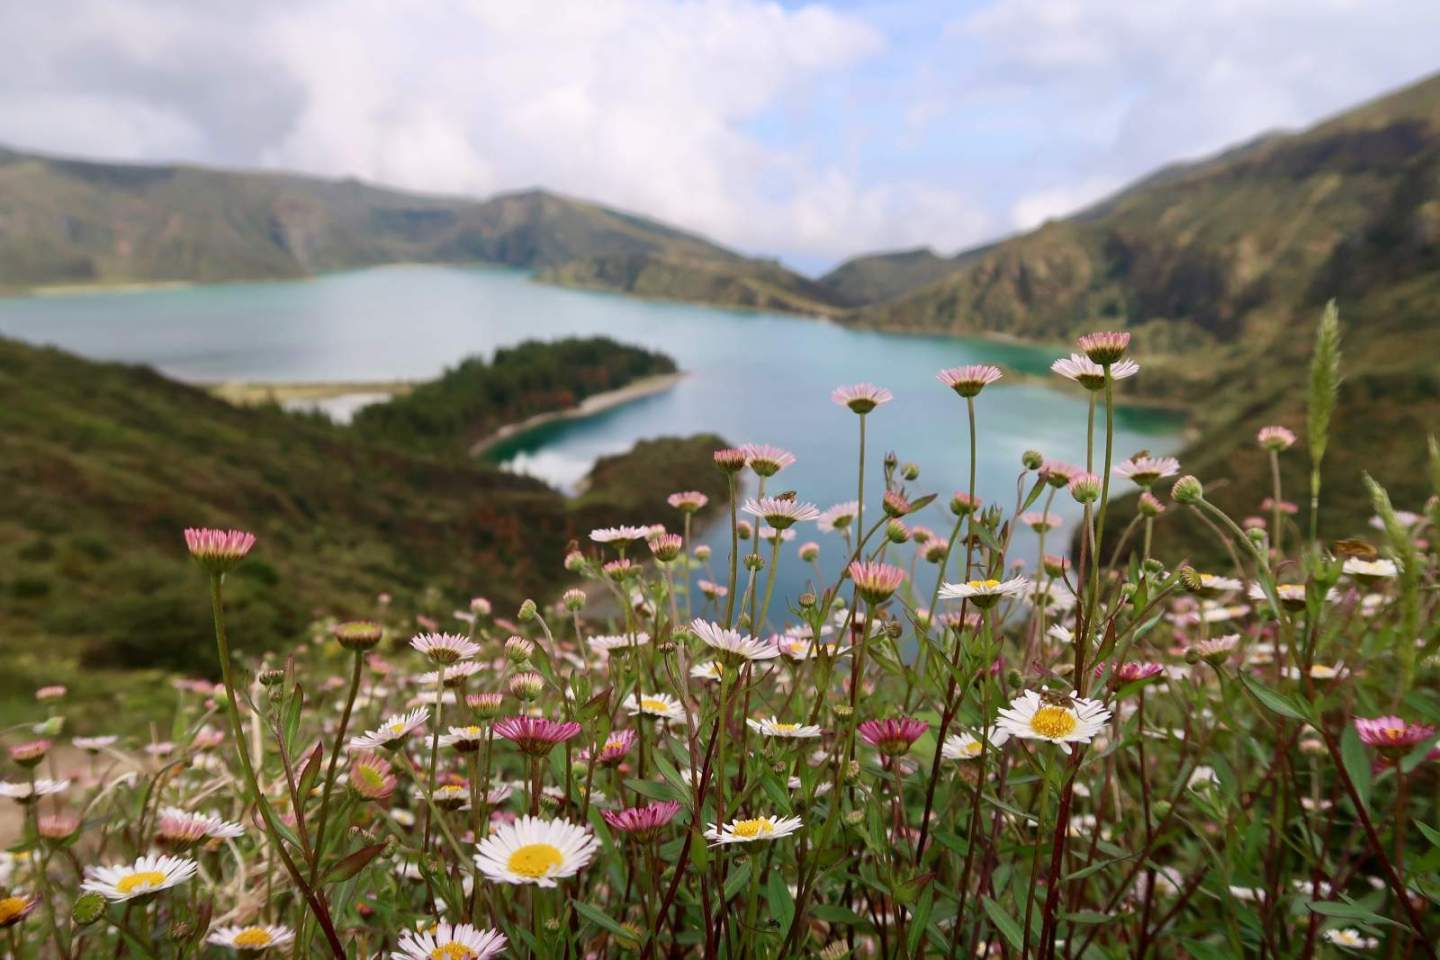 azores portugal flowers lake nature